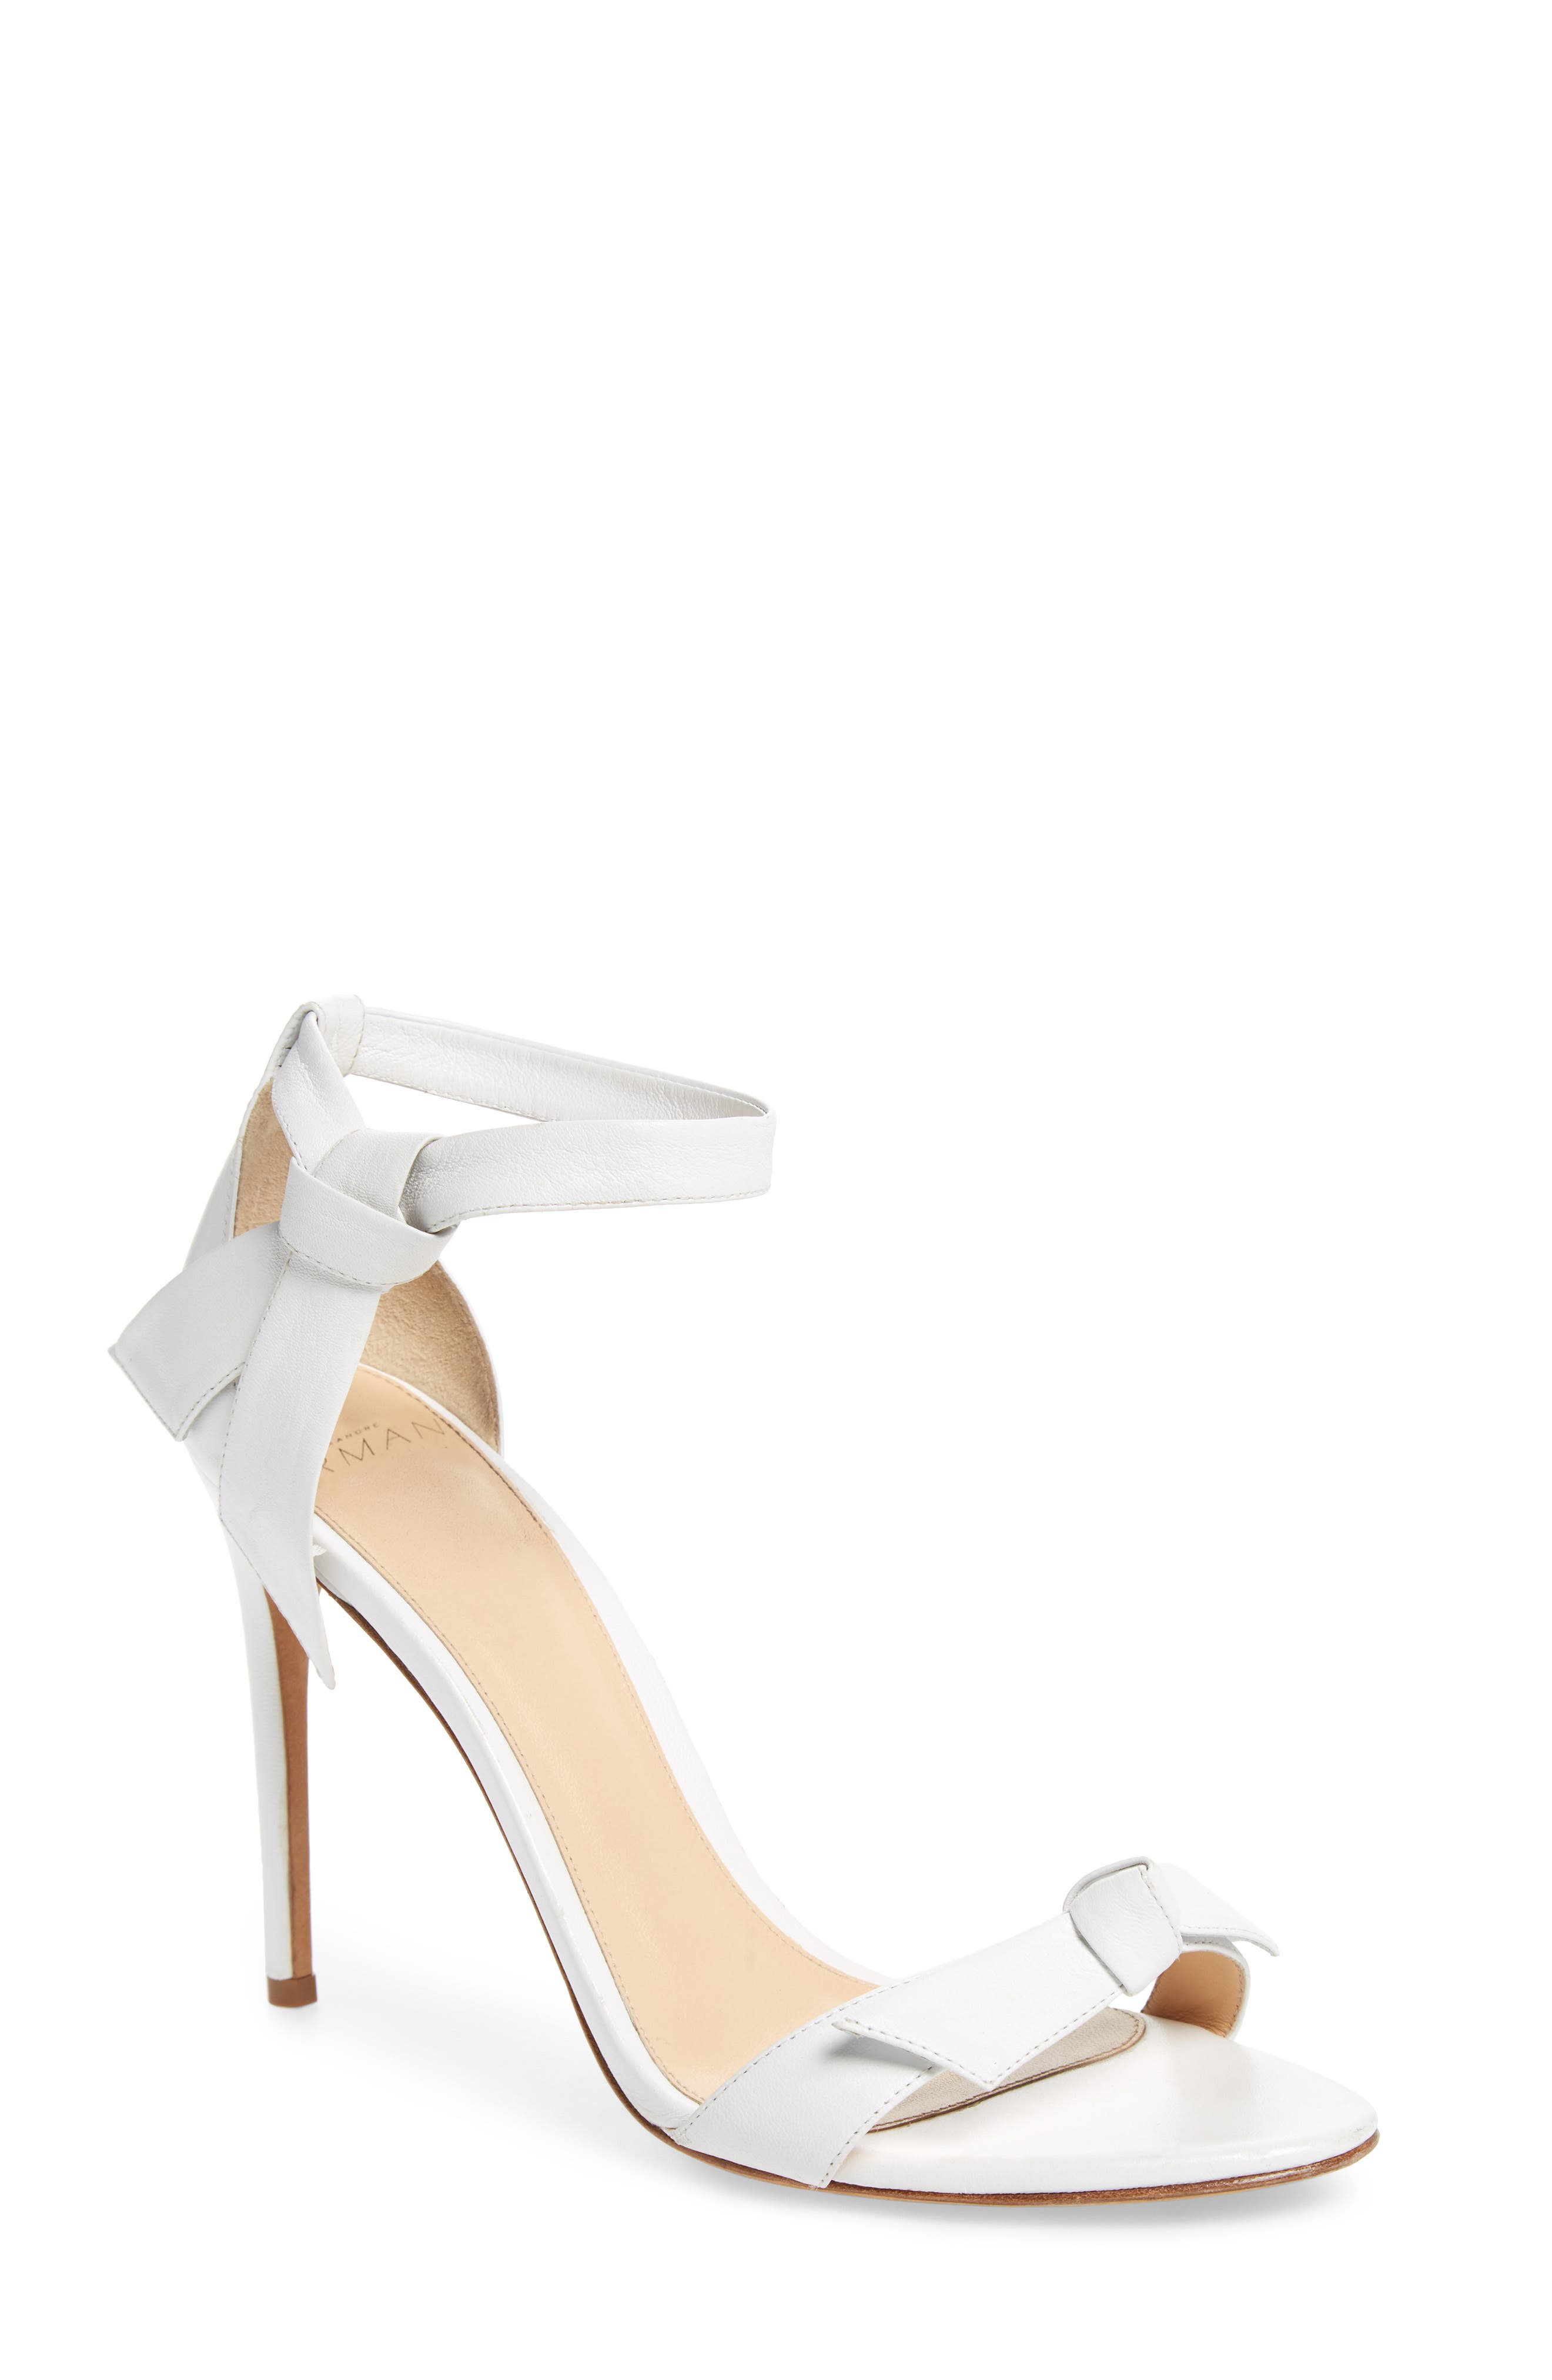 'Clarita' Ankle Tie Sandal,                         Main,                         color, WHITE LEATHER